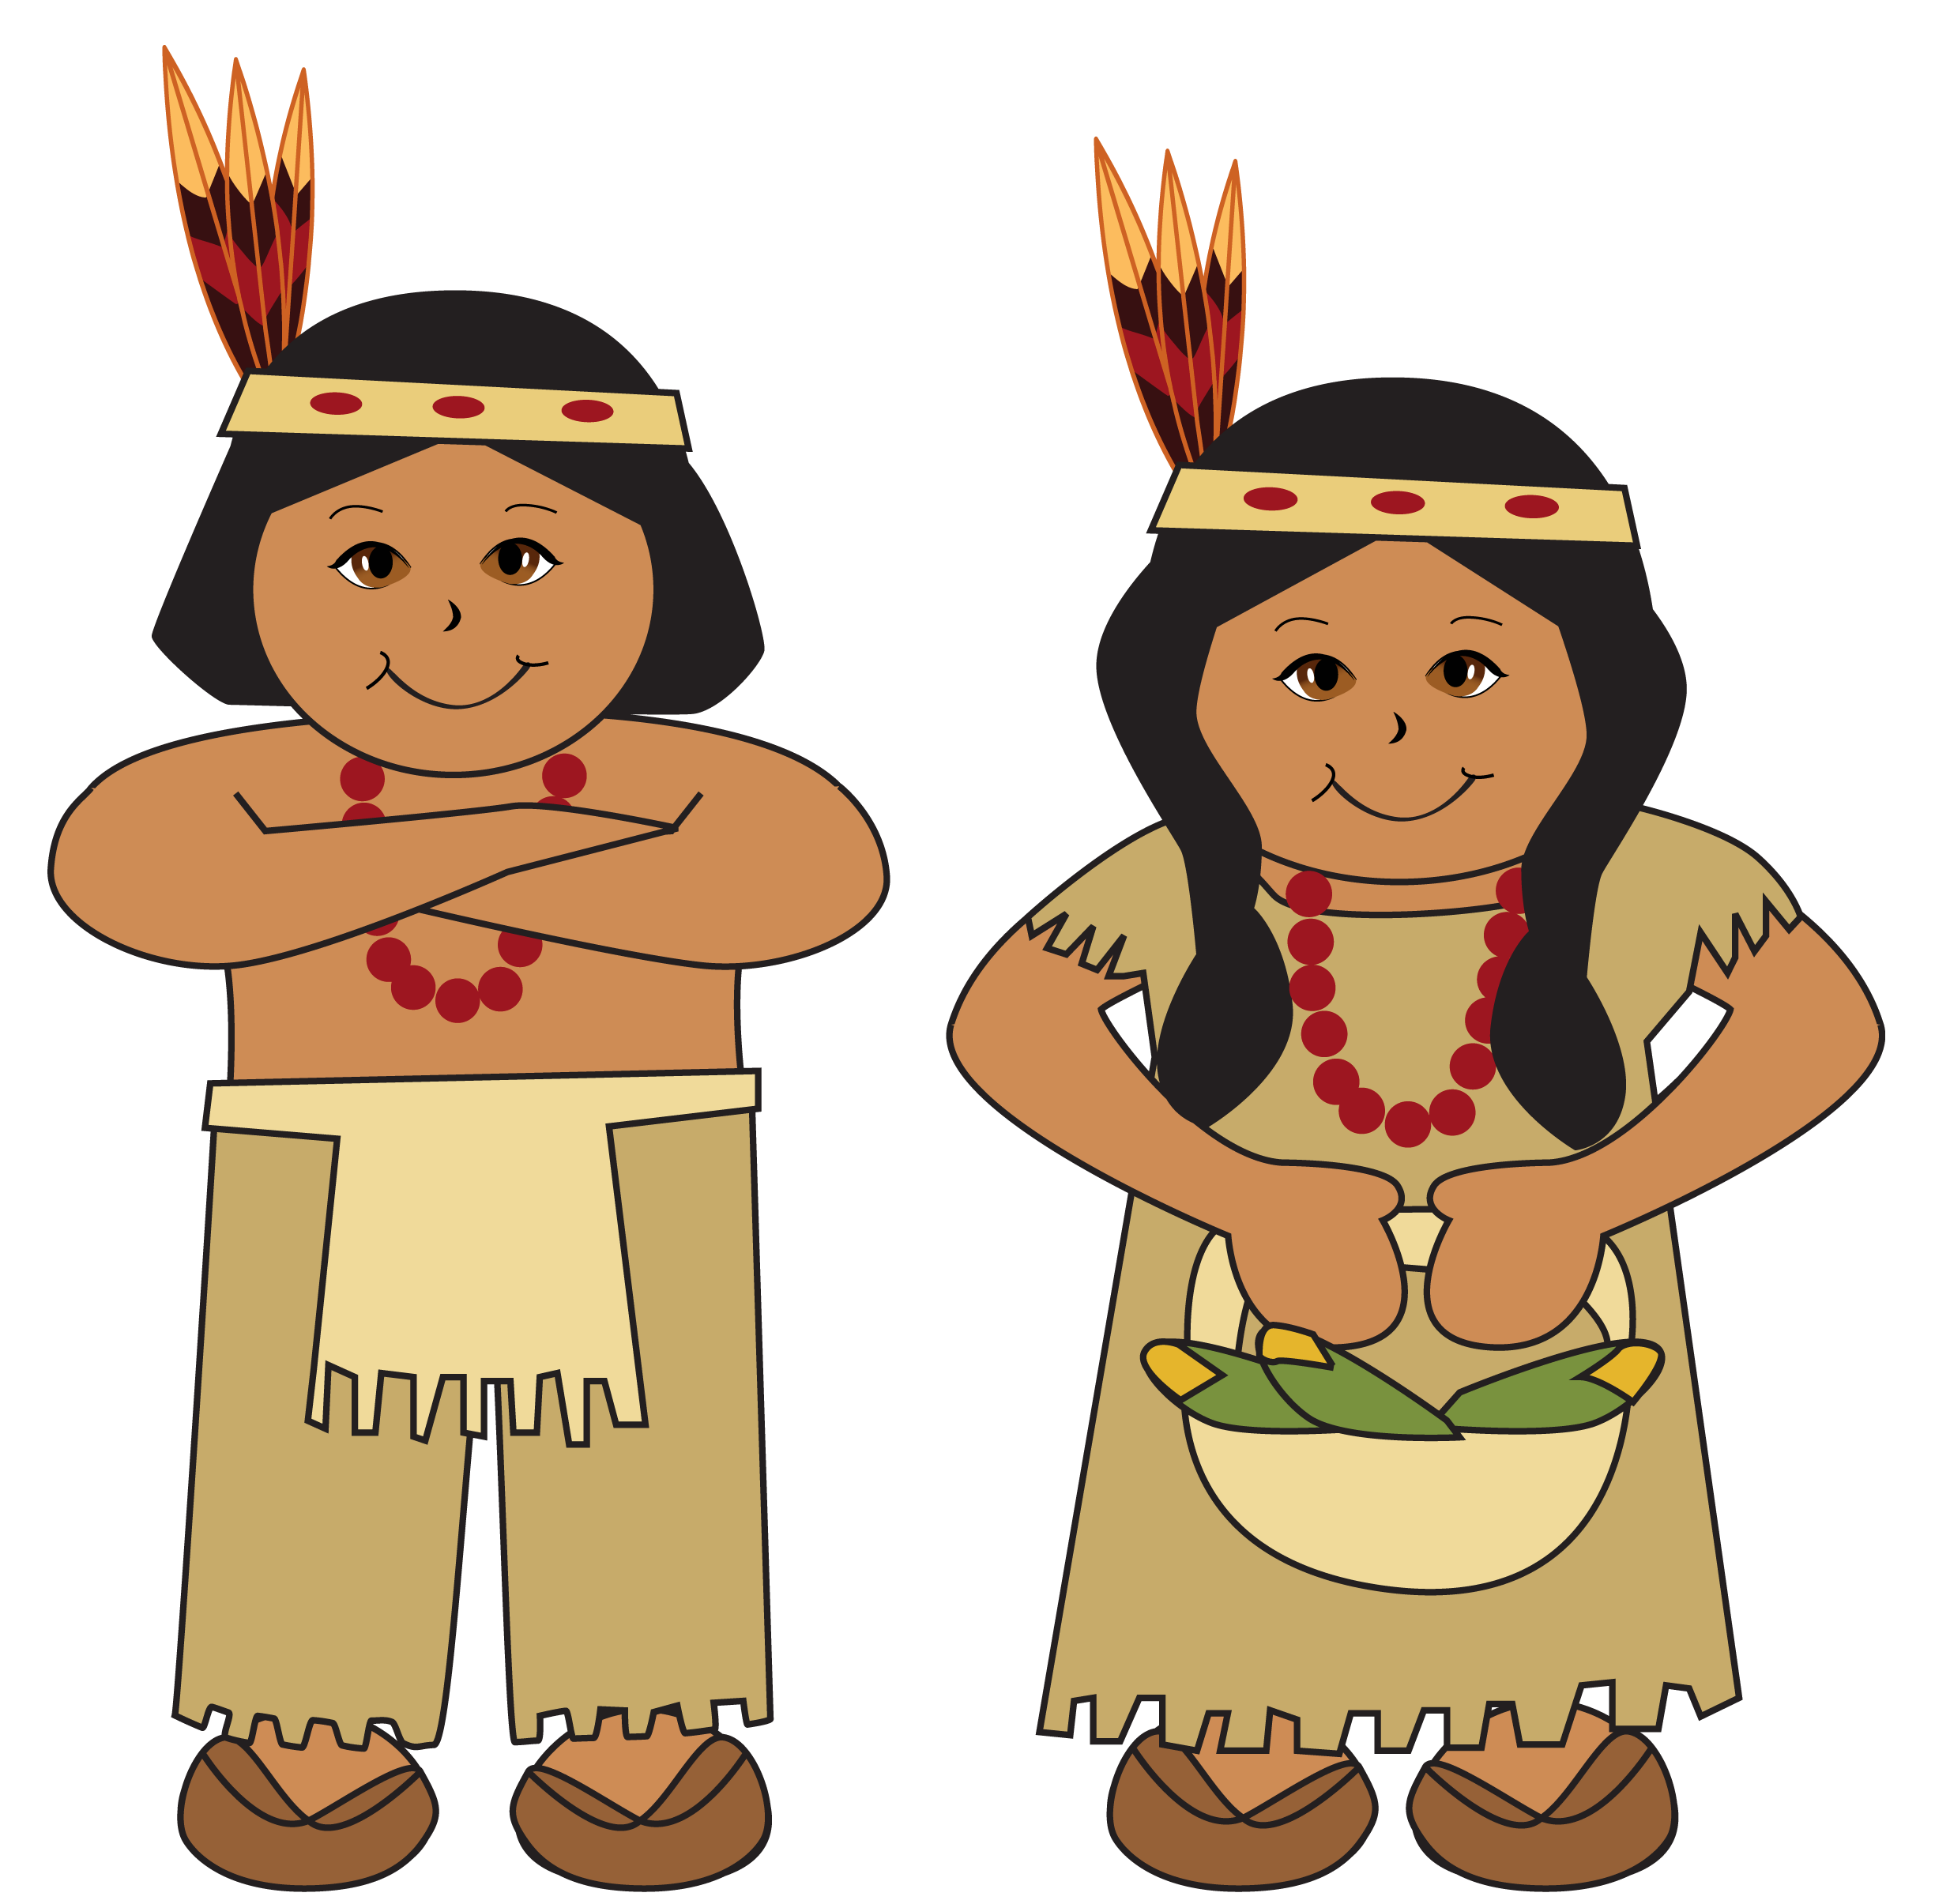 native american clipart transparent background